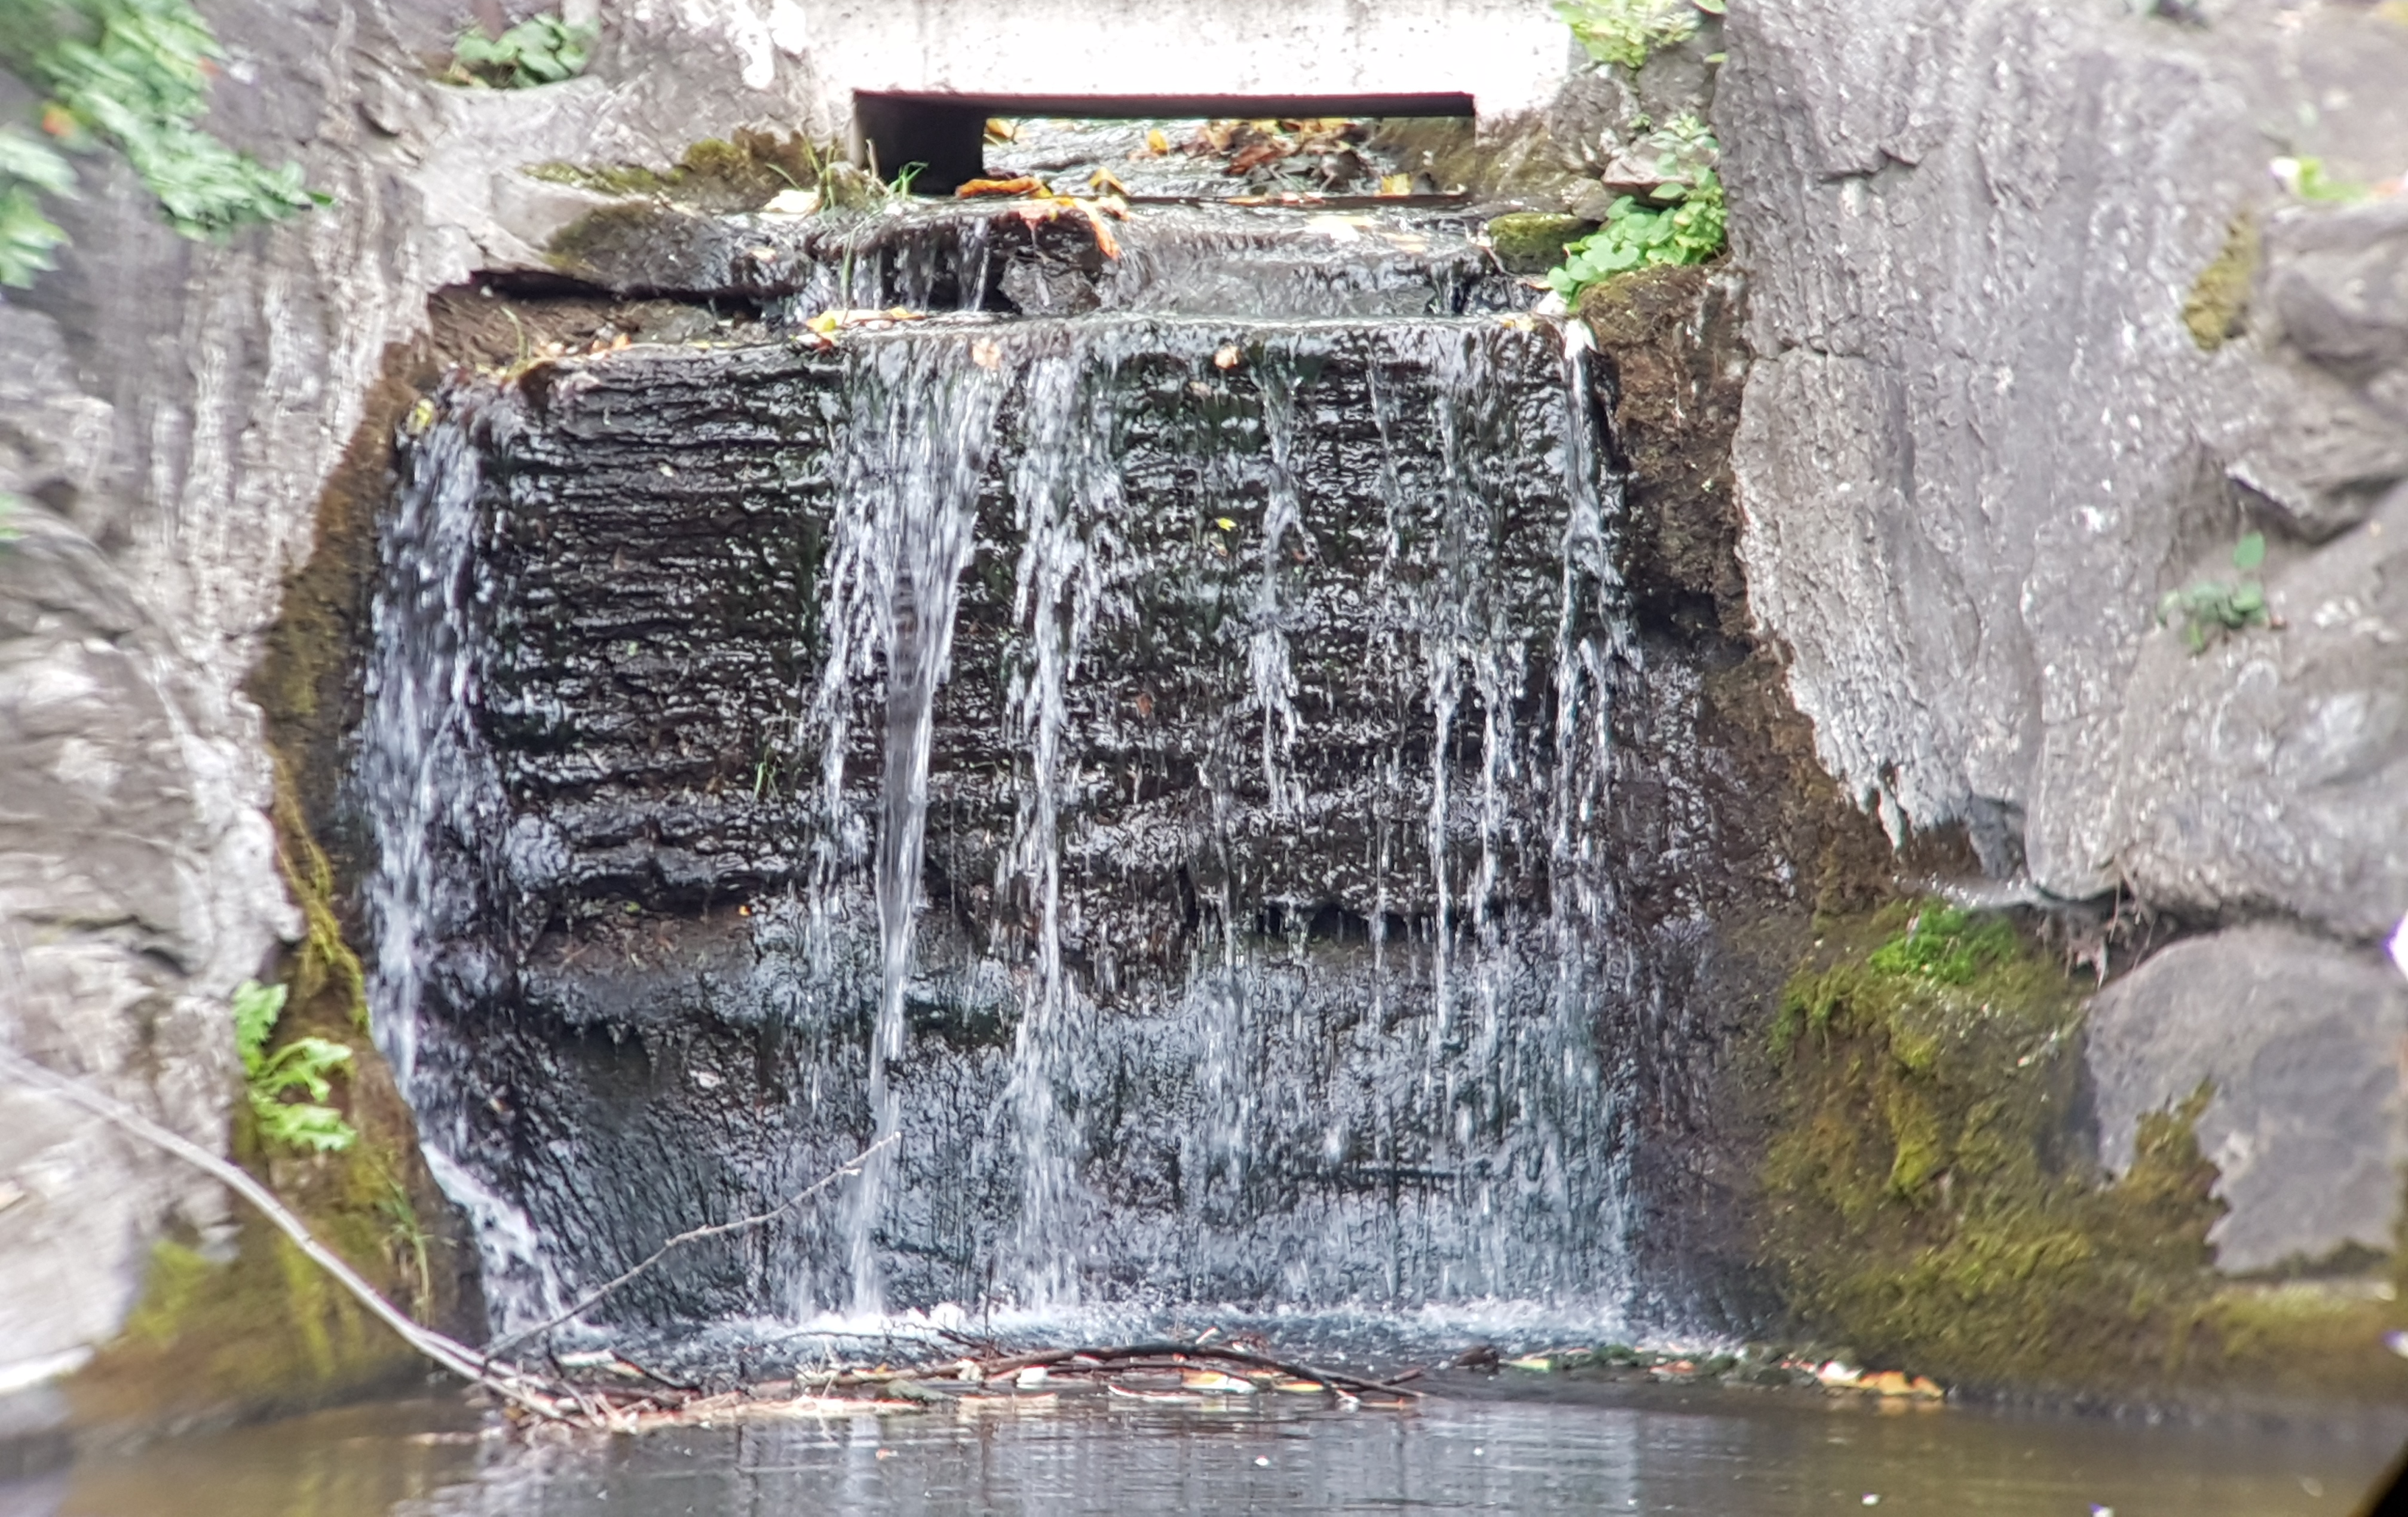 Beautiful waterfall at the park sight taken with our